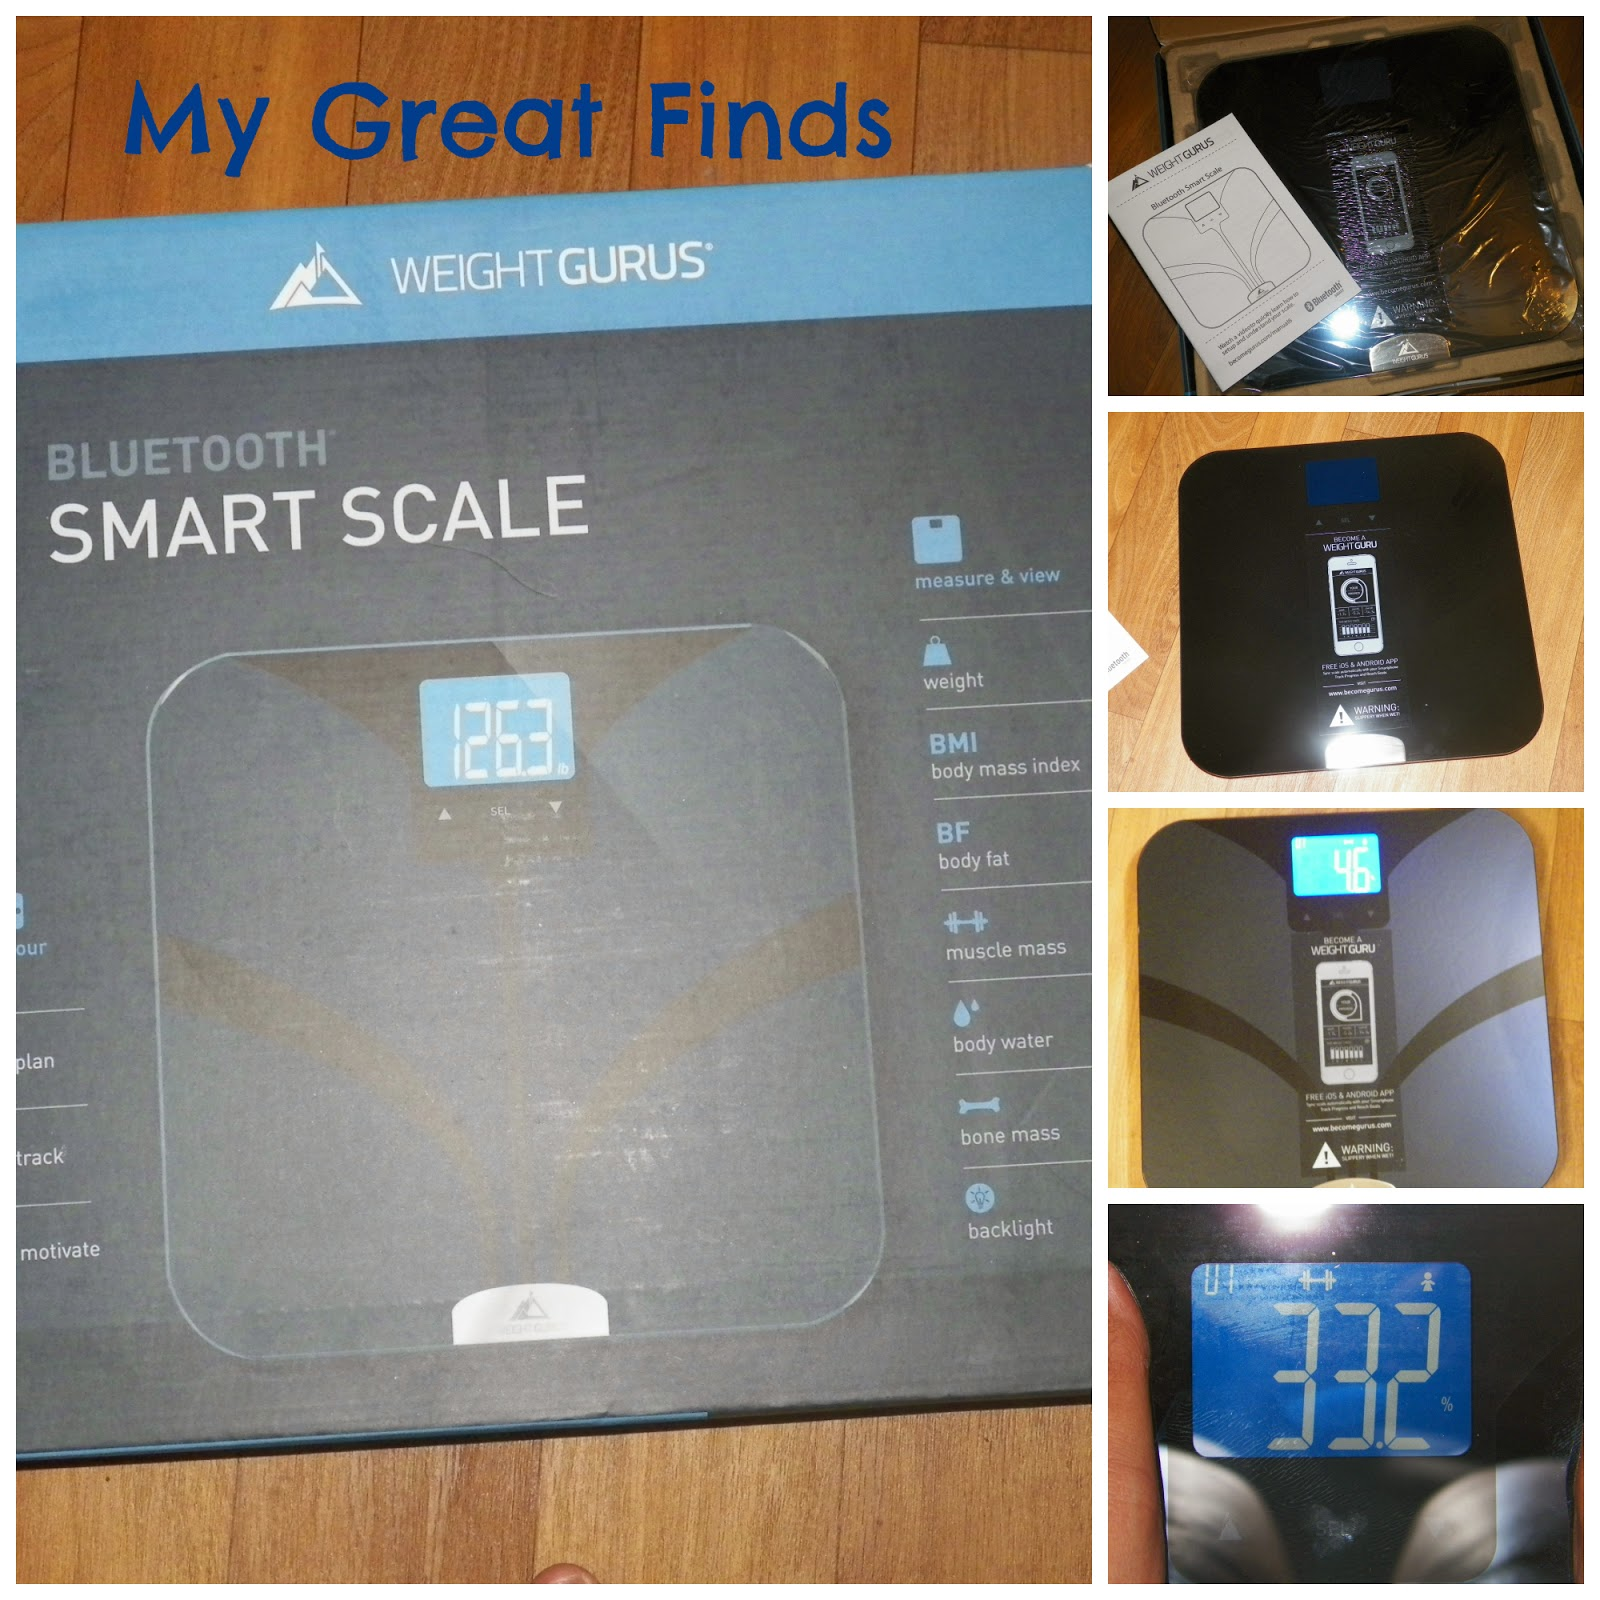 Mygreatfinds Weight Gurus Bluetooth Smart Connected Body Fat Scale By Greater Goods Review